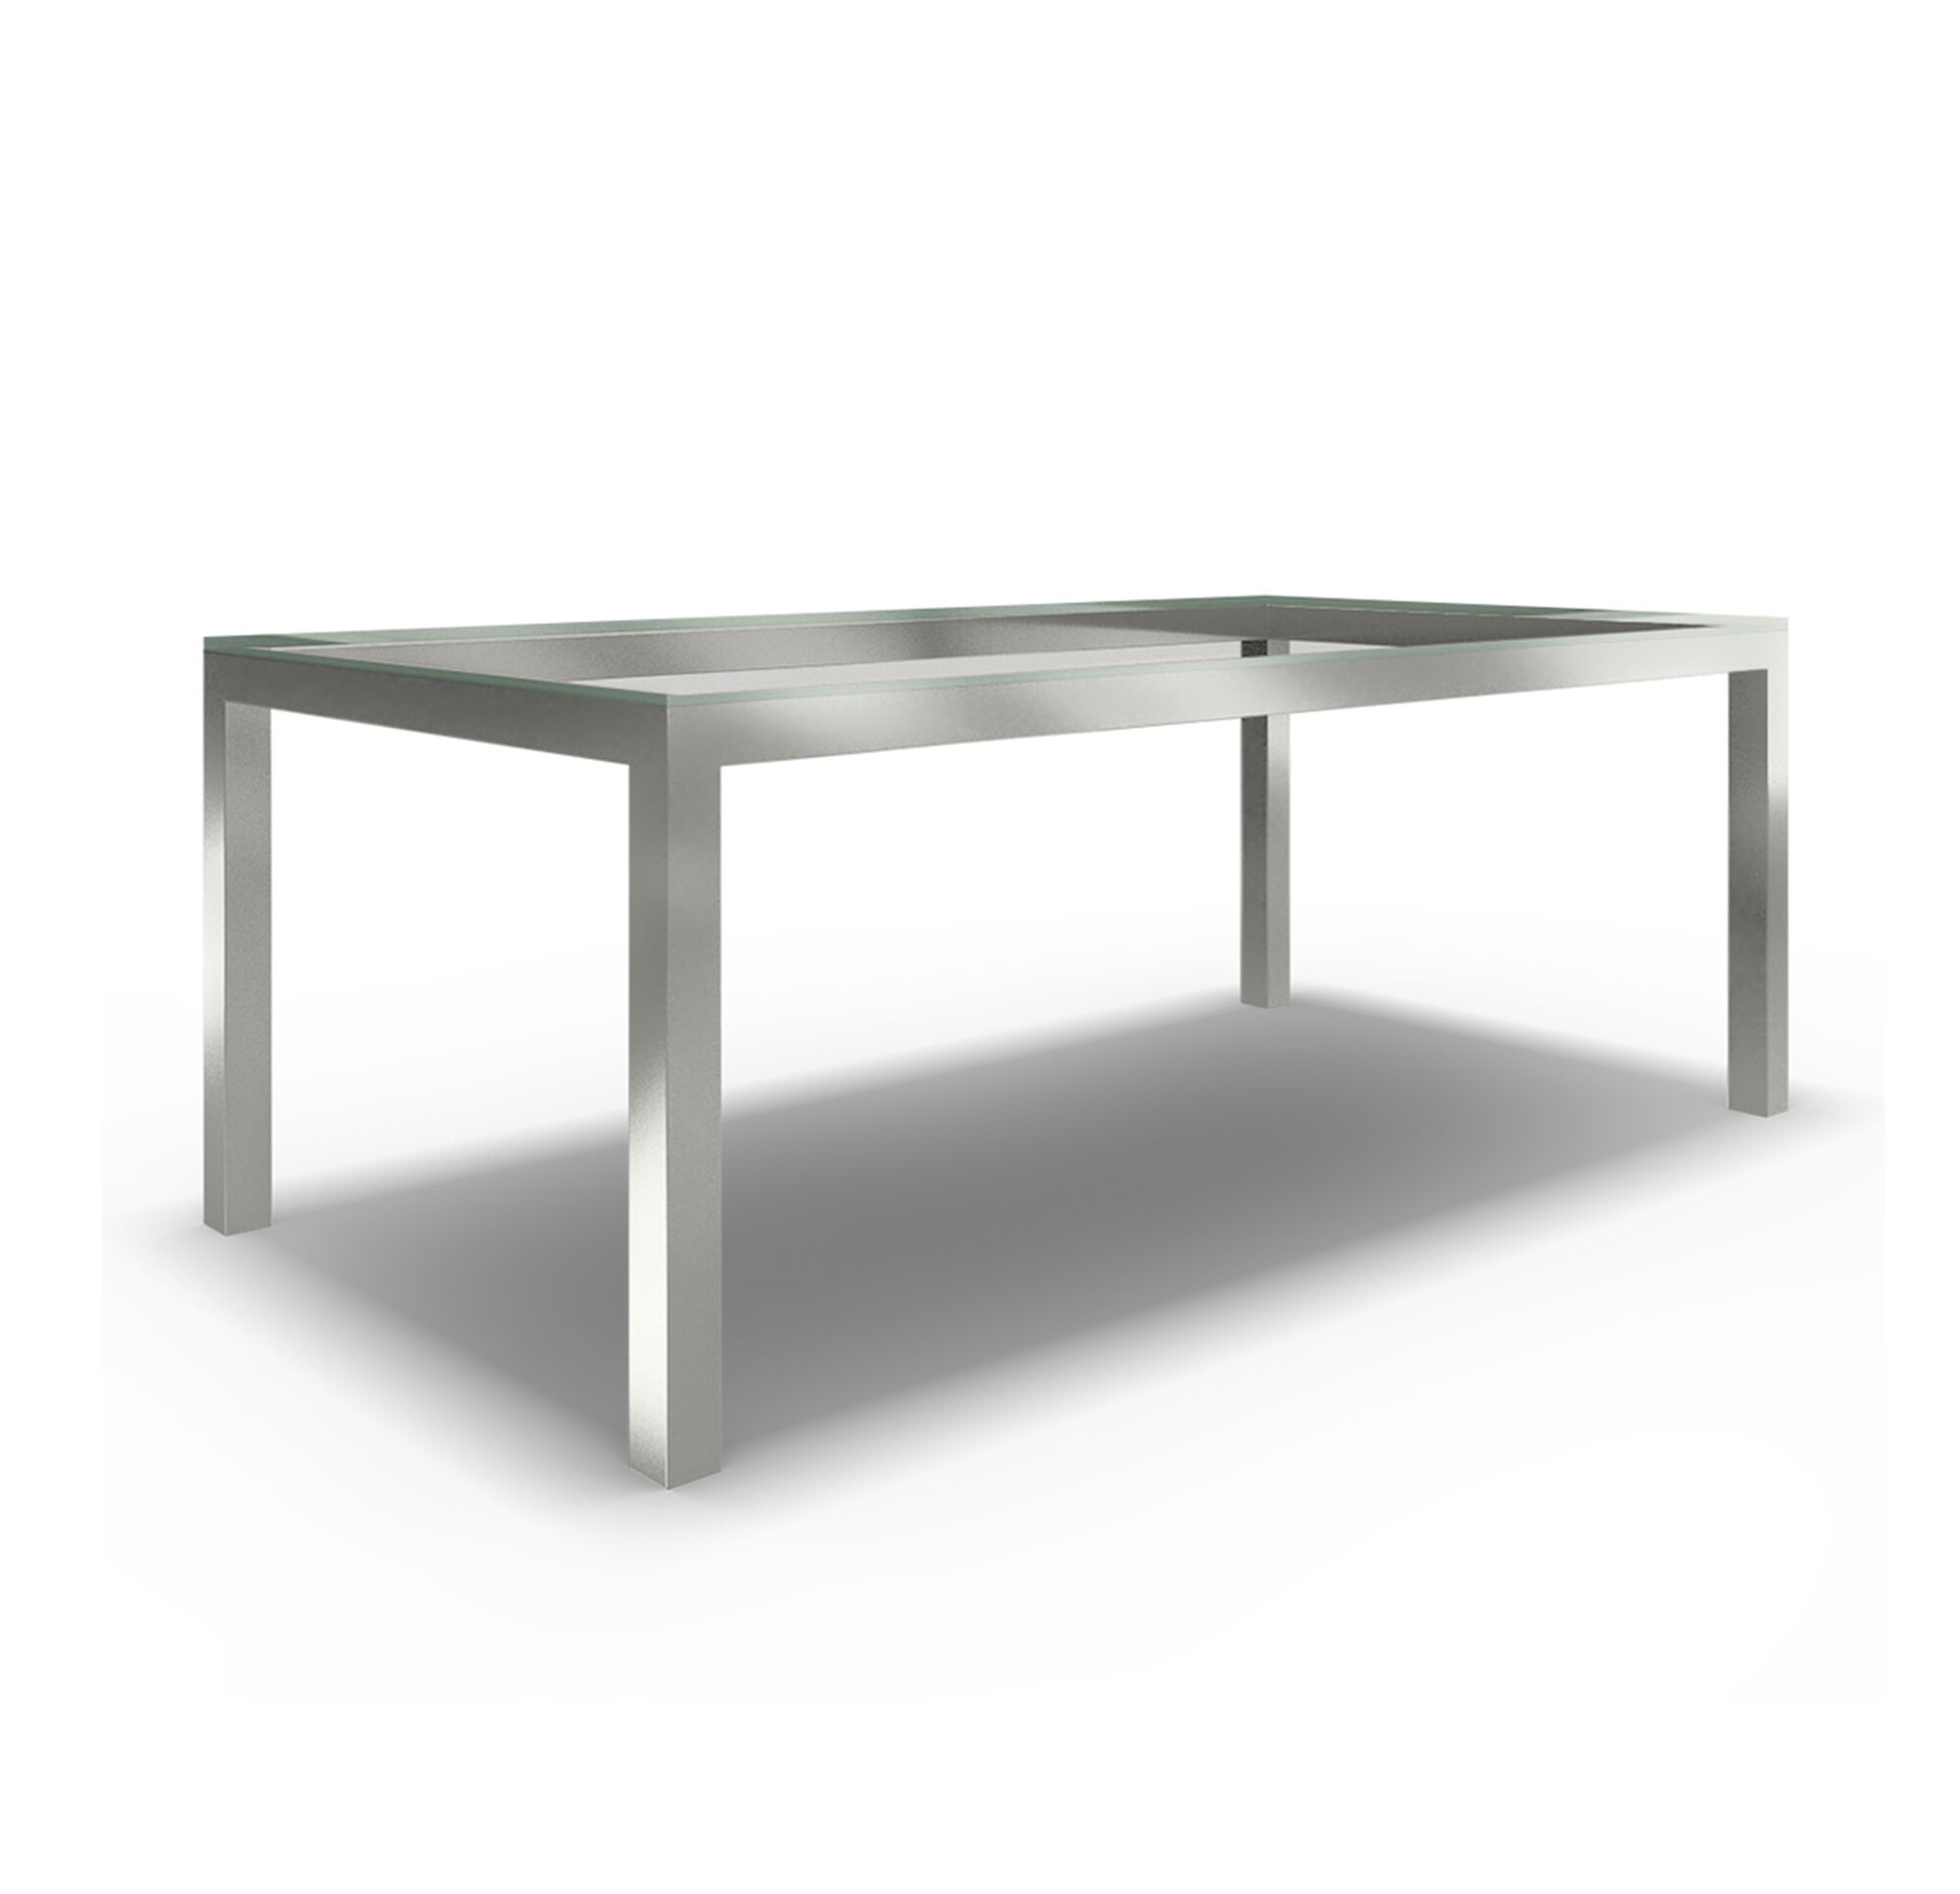 CLASSIC PARSONS DINING TABLE POLISHED STAINLESS STEEL